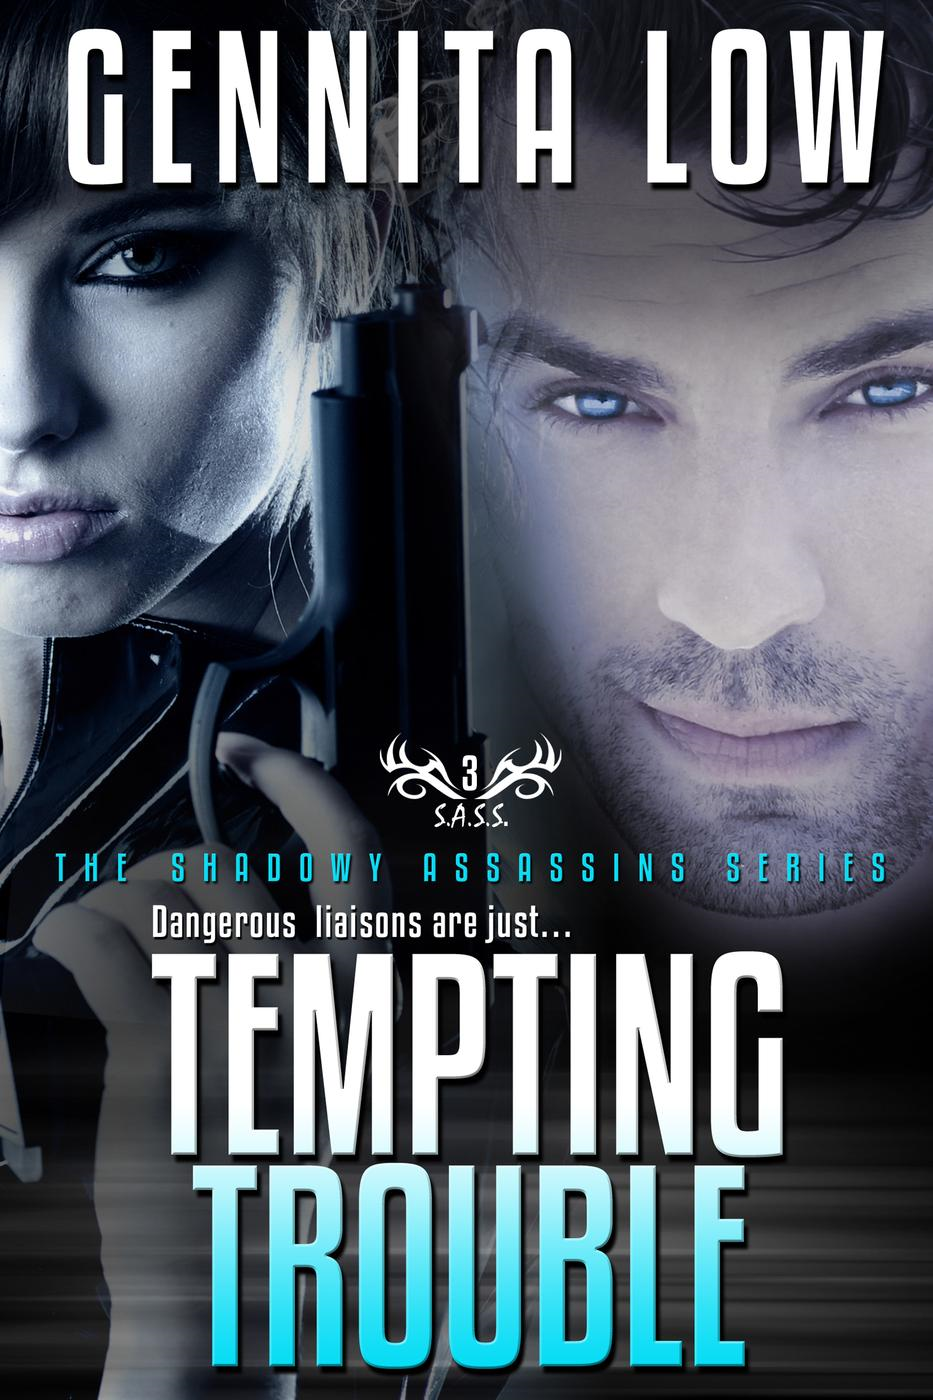 TEMPTING TROUBLE (Secret Assassins (S.A.S.S.), #3)